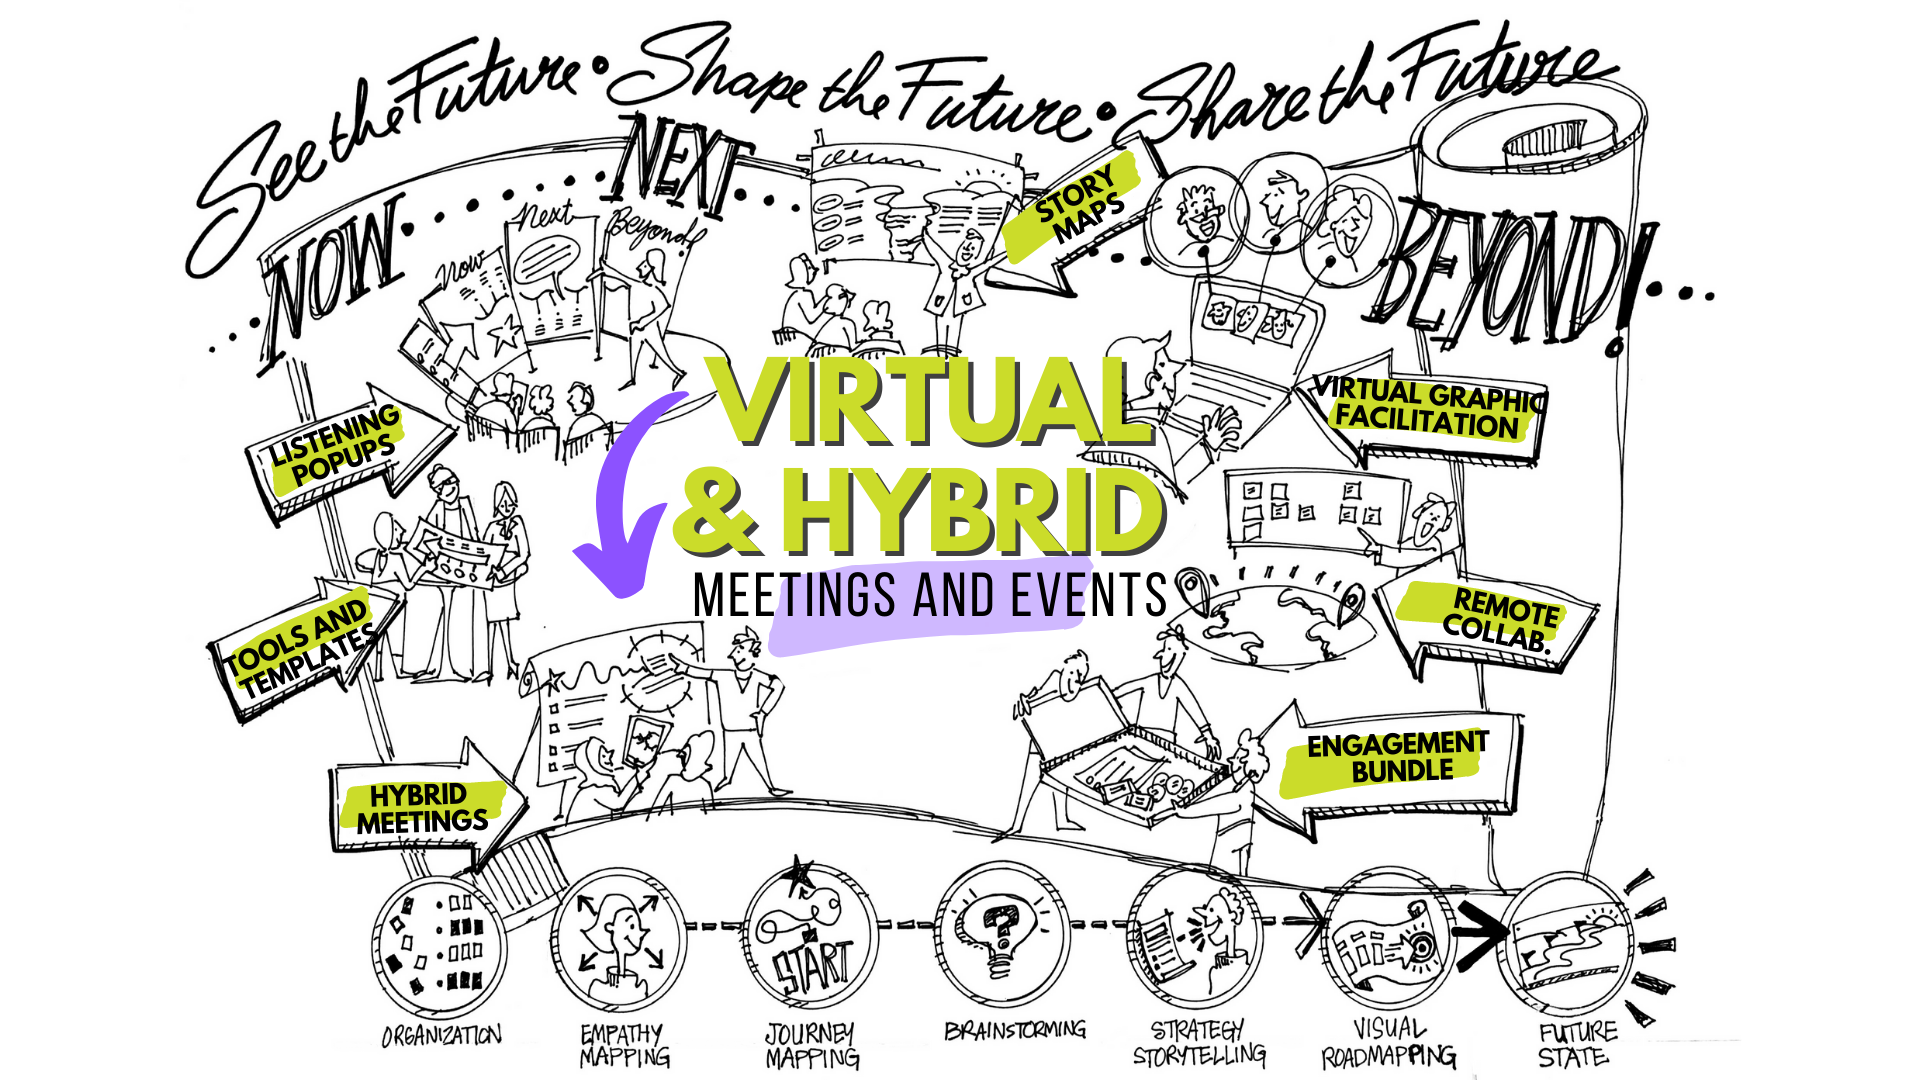 VIRTUAL & HYBRID strategy mapping with team members